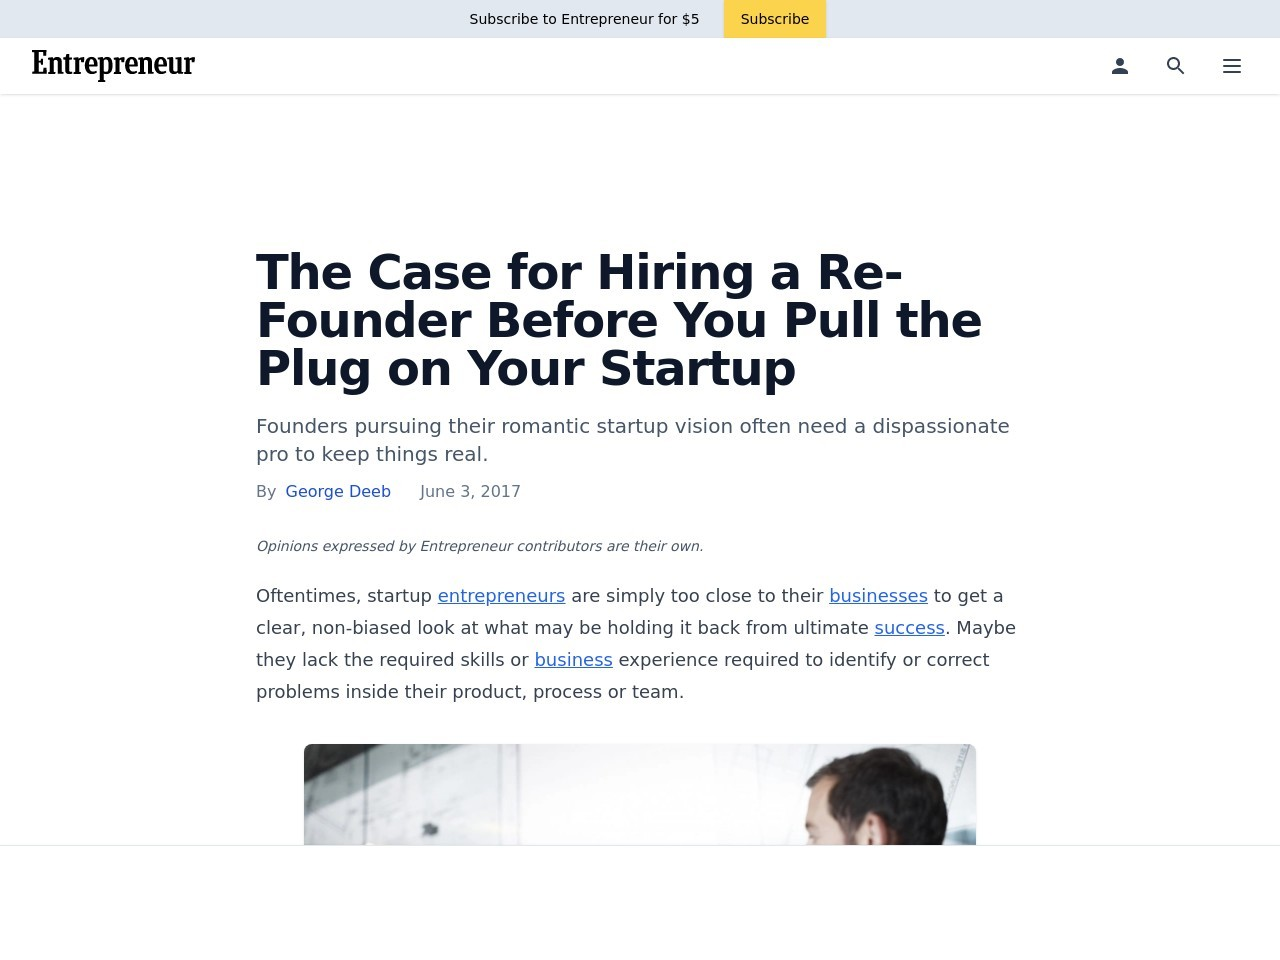 The Case for Hiring a Re-Founder Before You Pull the Plug on Your Startup